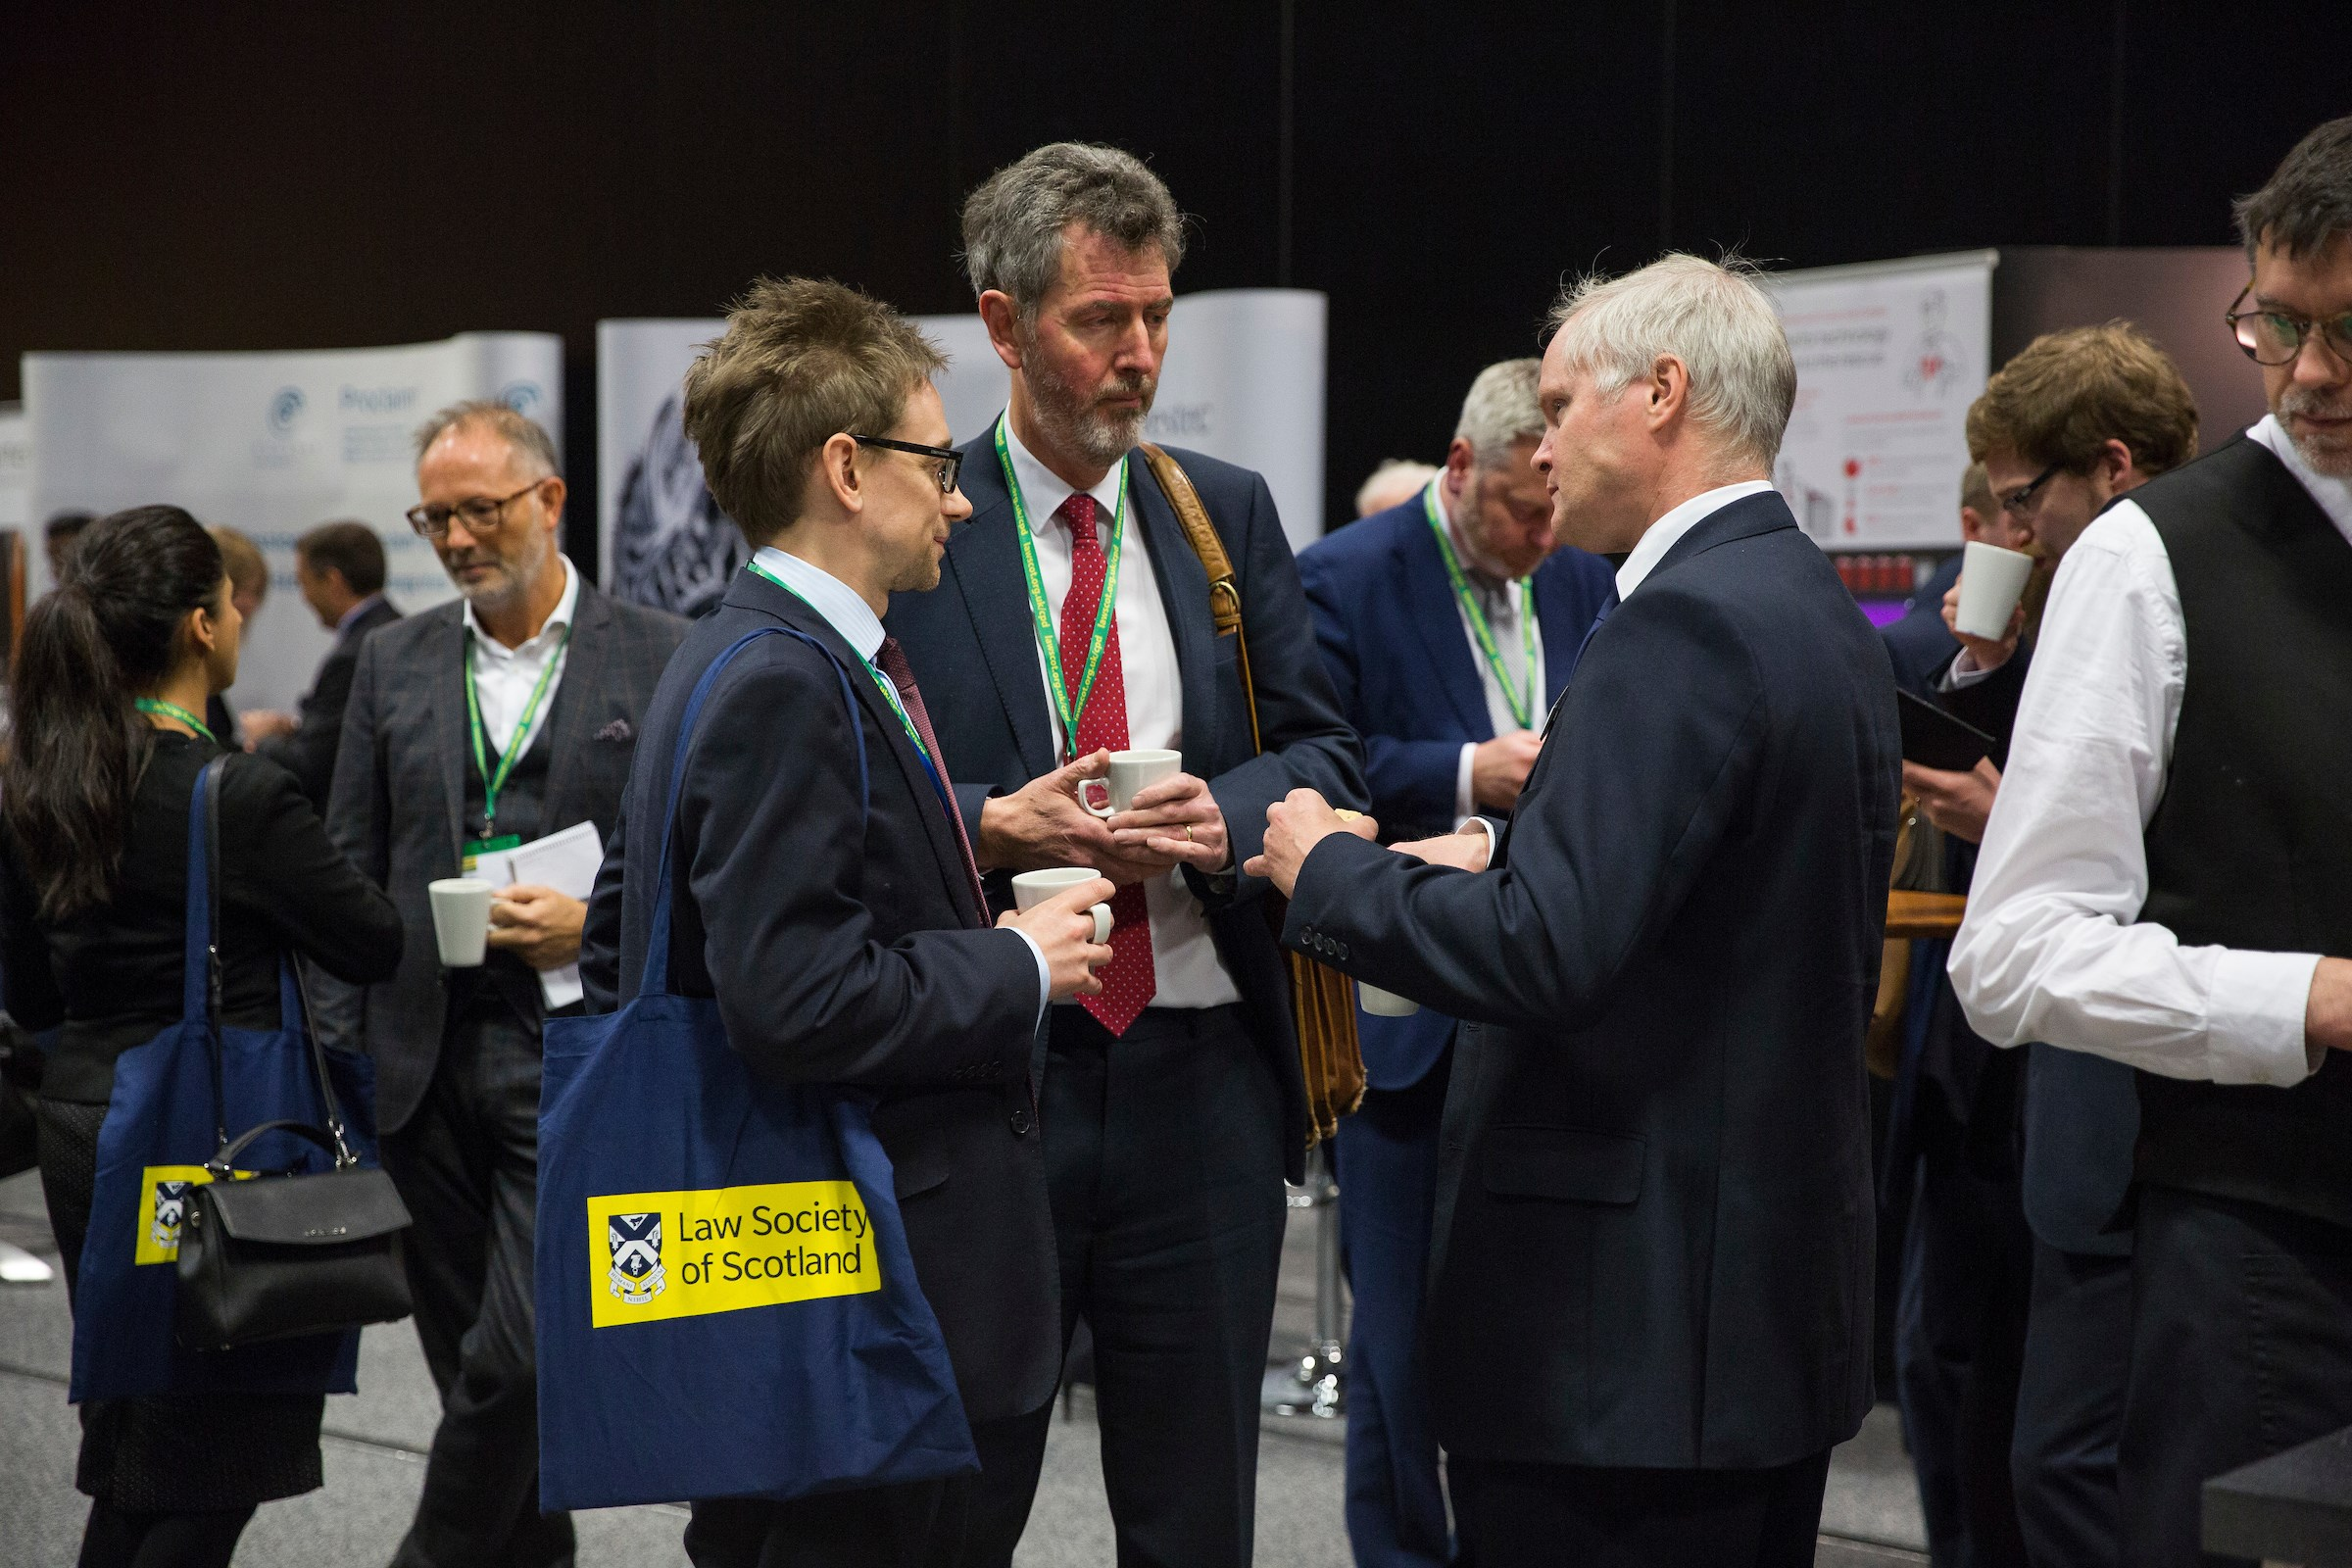 There are plenty of opportunities to network with other delegates, speakers and exhibitors.